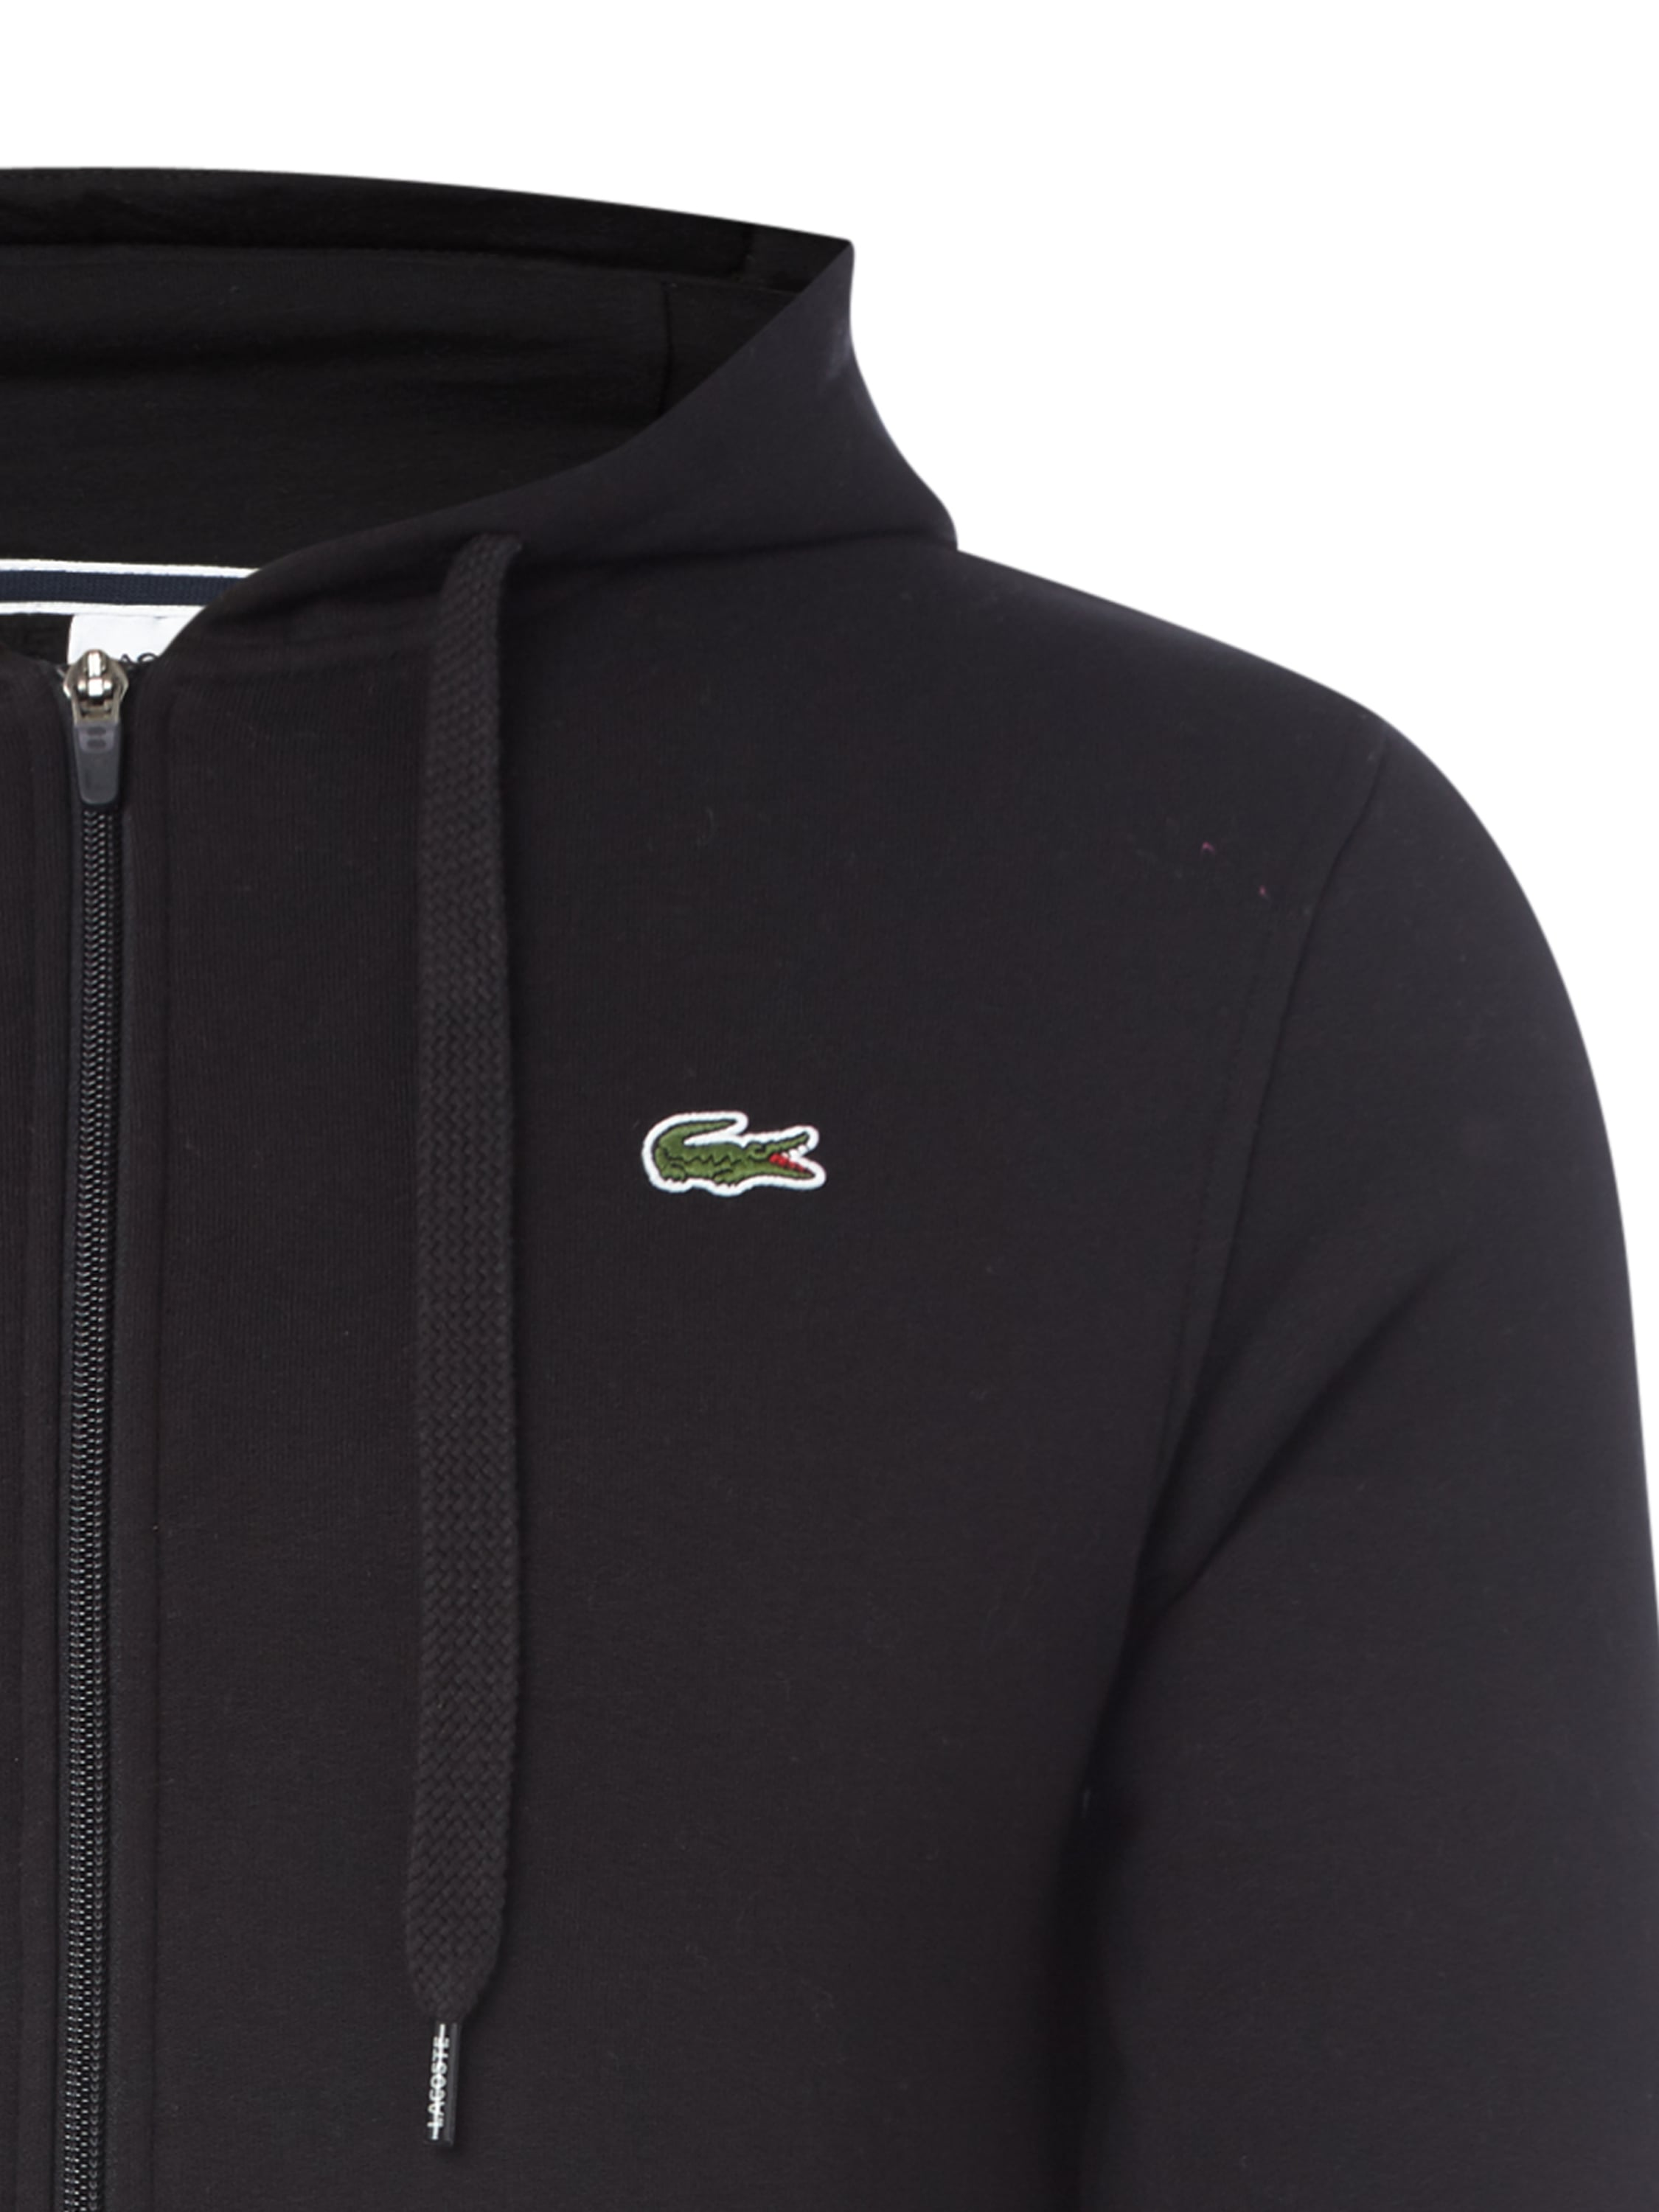 Lacoste Shoes Usa Online